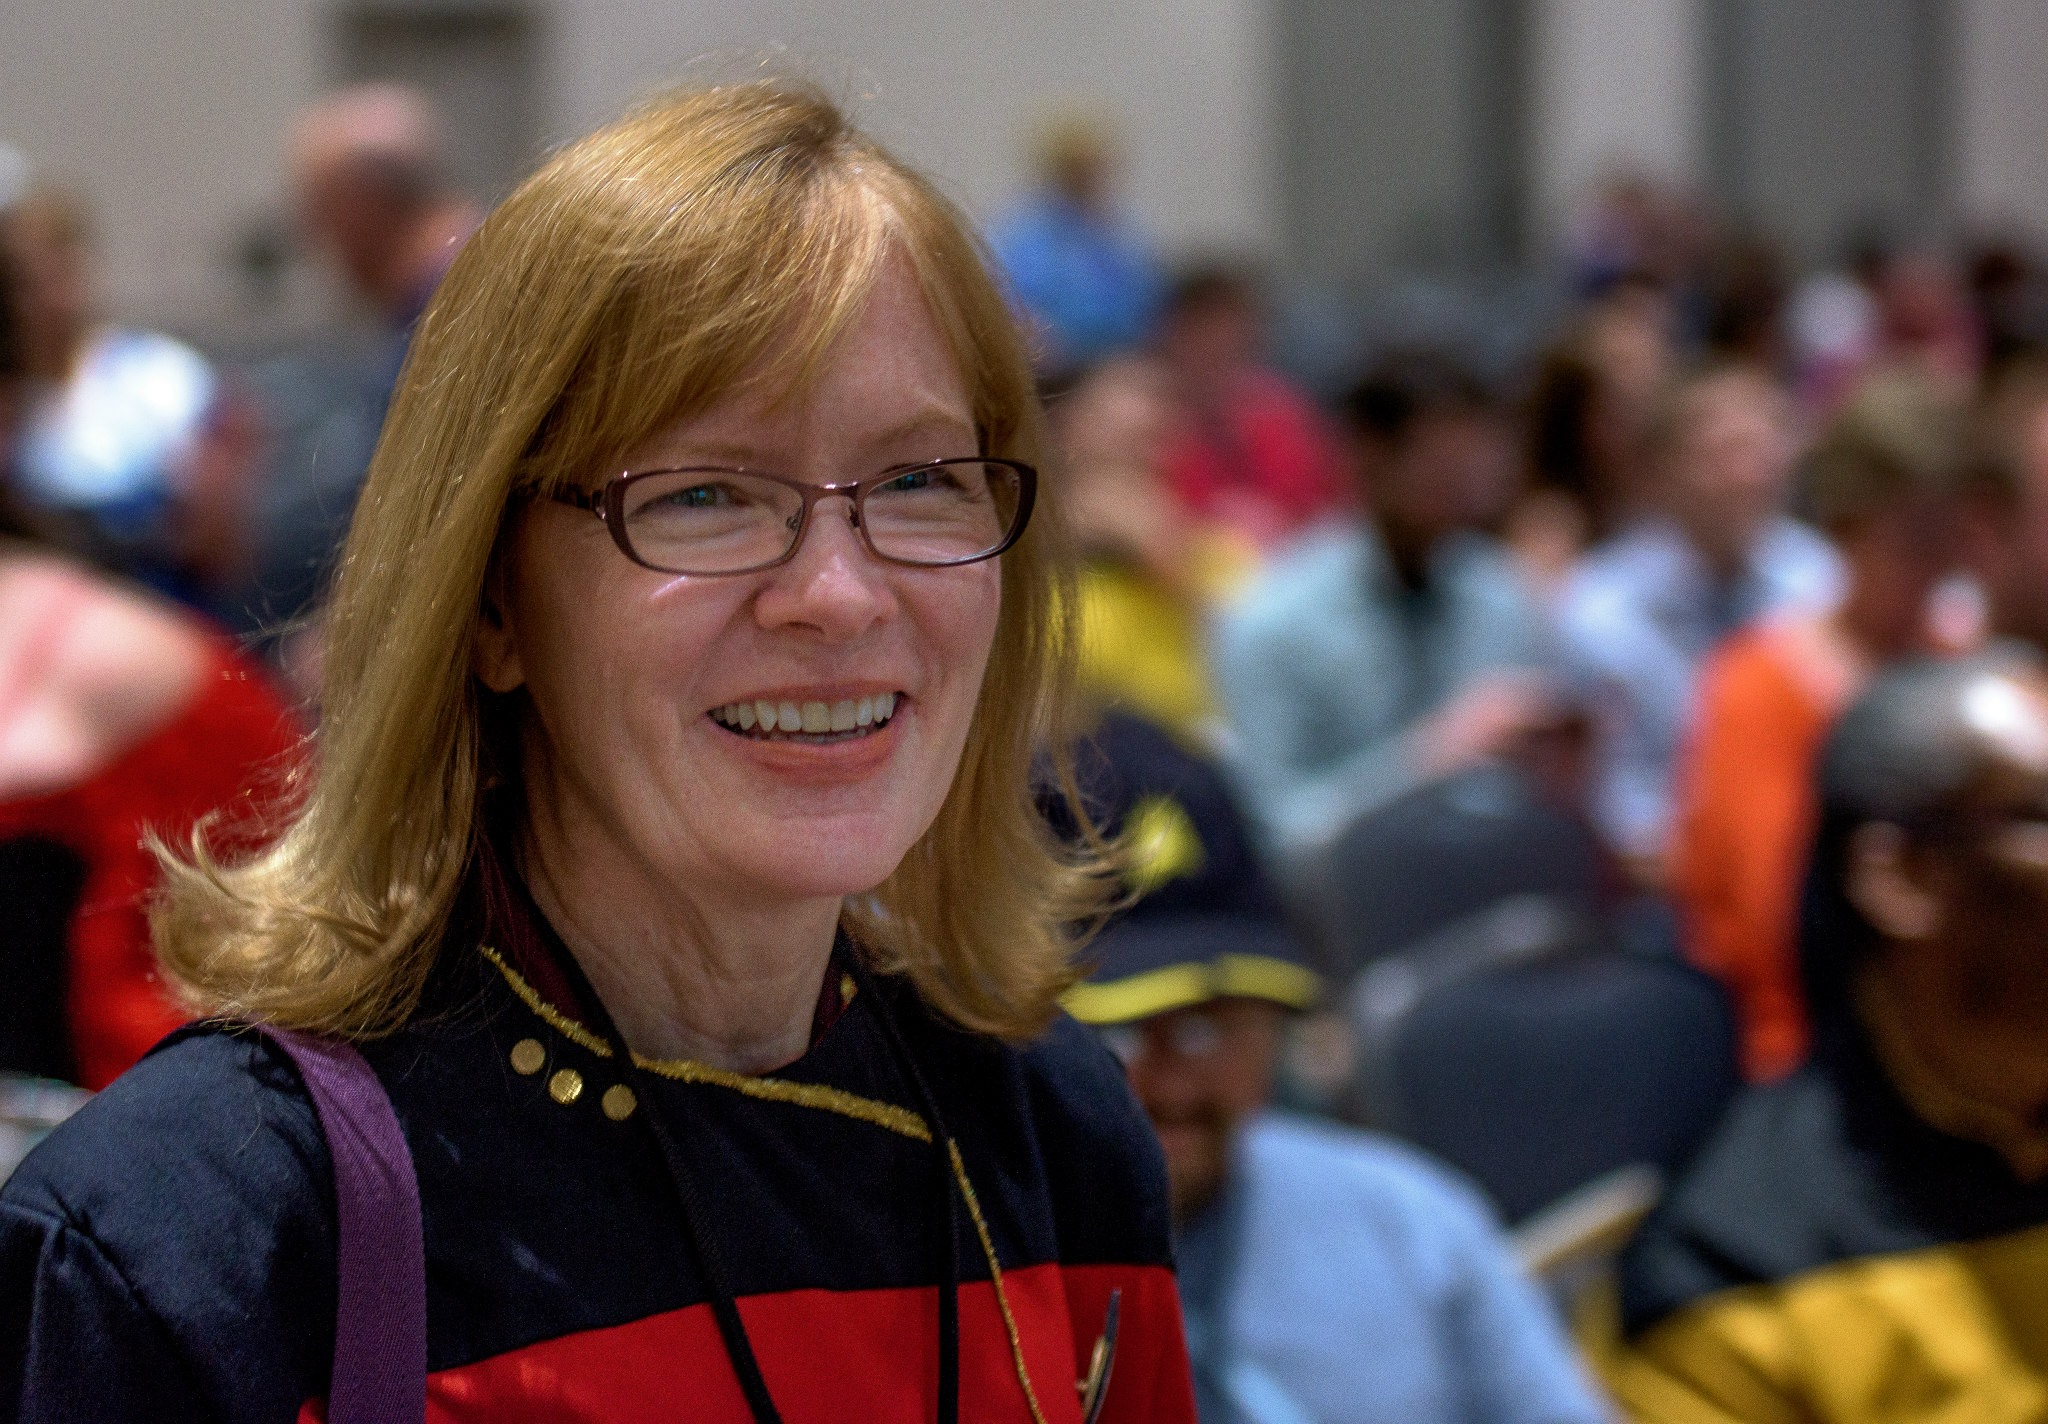 Marianne Dyson photo by Carl Shier at Space City Comic Con 2015.